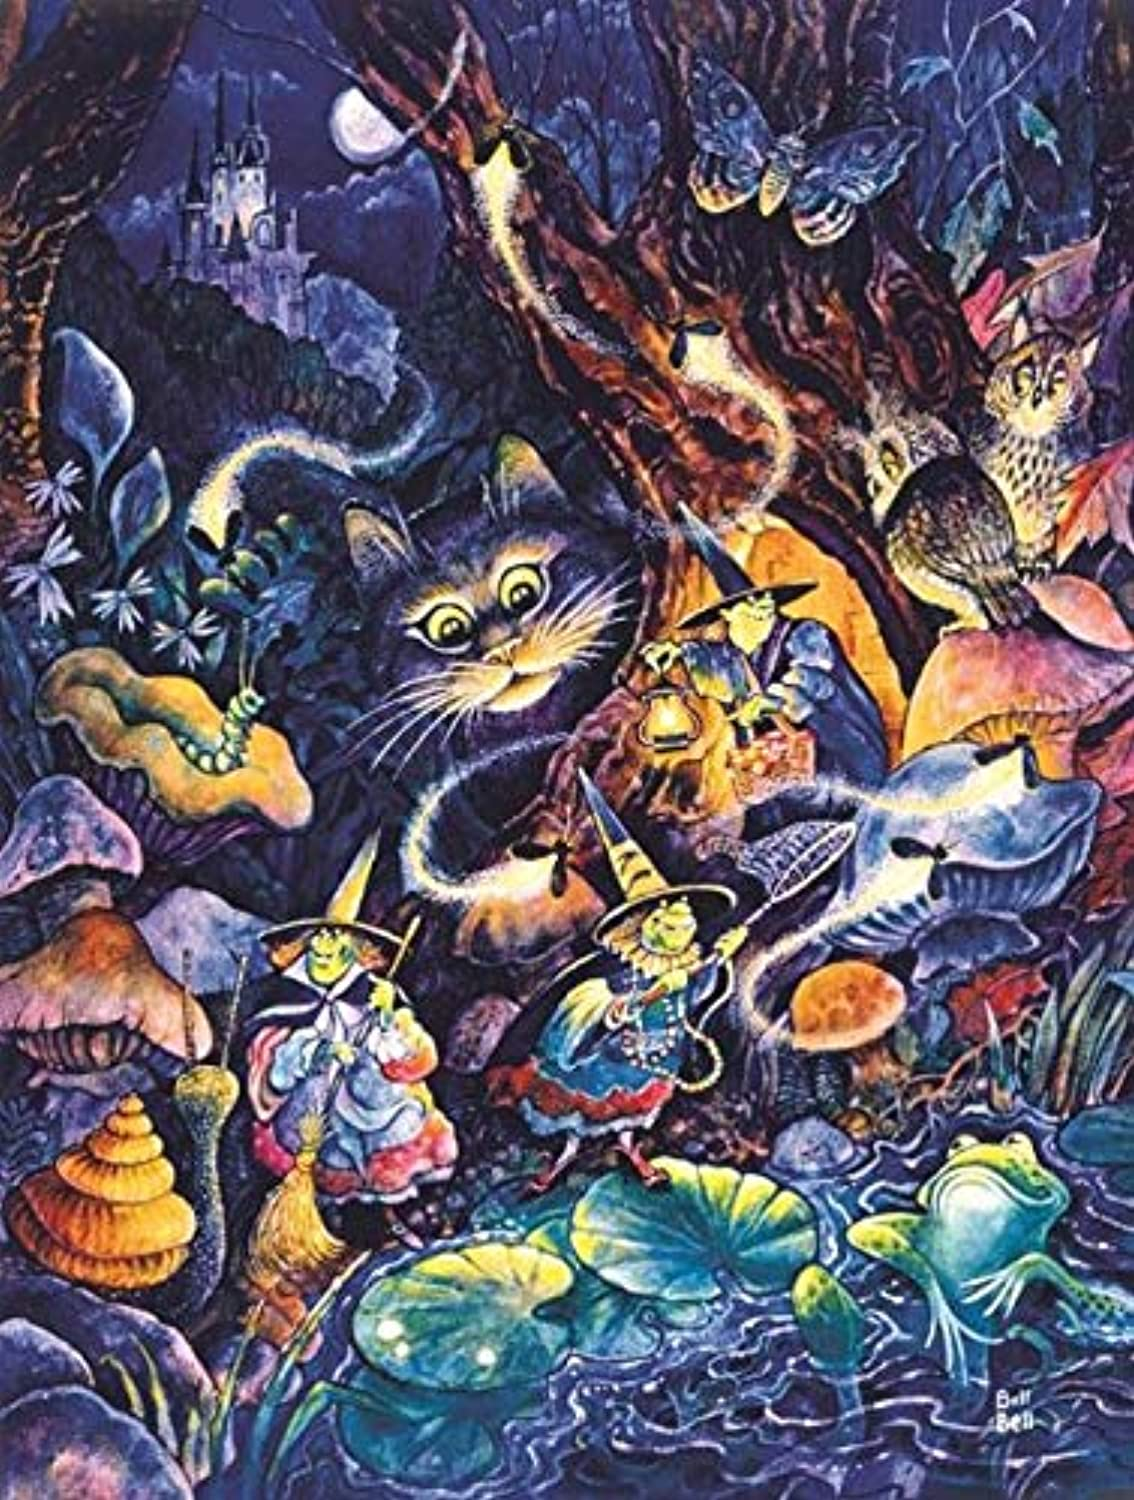 Three Witches 500 pc Halloween Jigsaw Puzzle by SunsOut